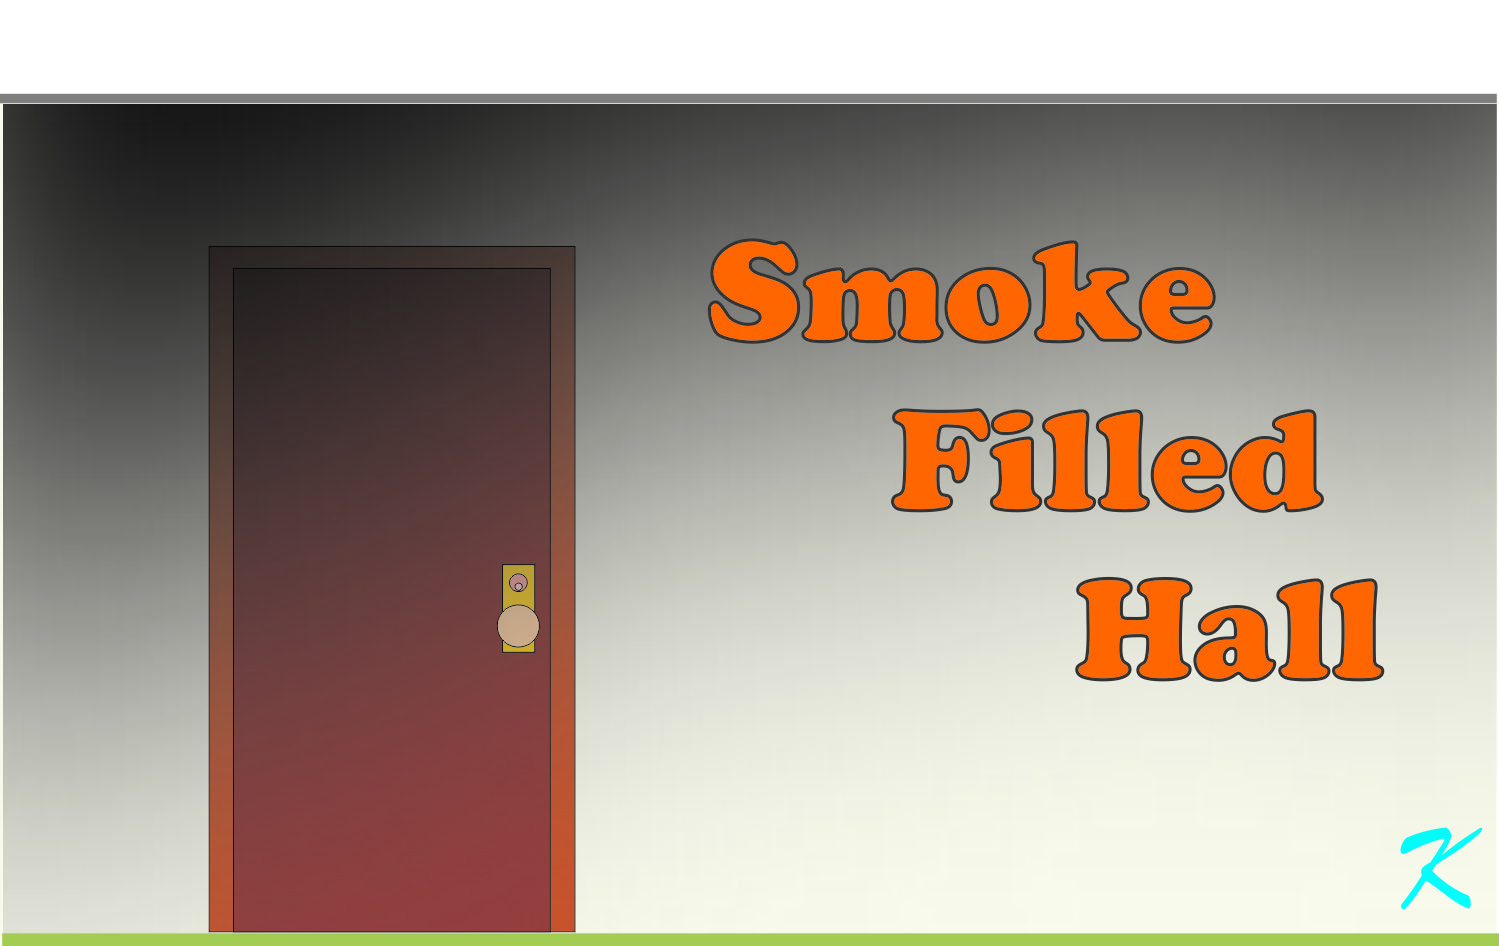 When the alarms are sounding, slowly check the hallways for smoke before using the hallways for escape